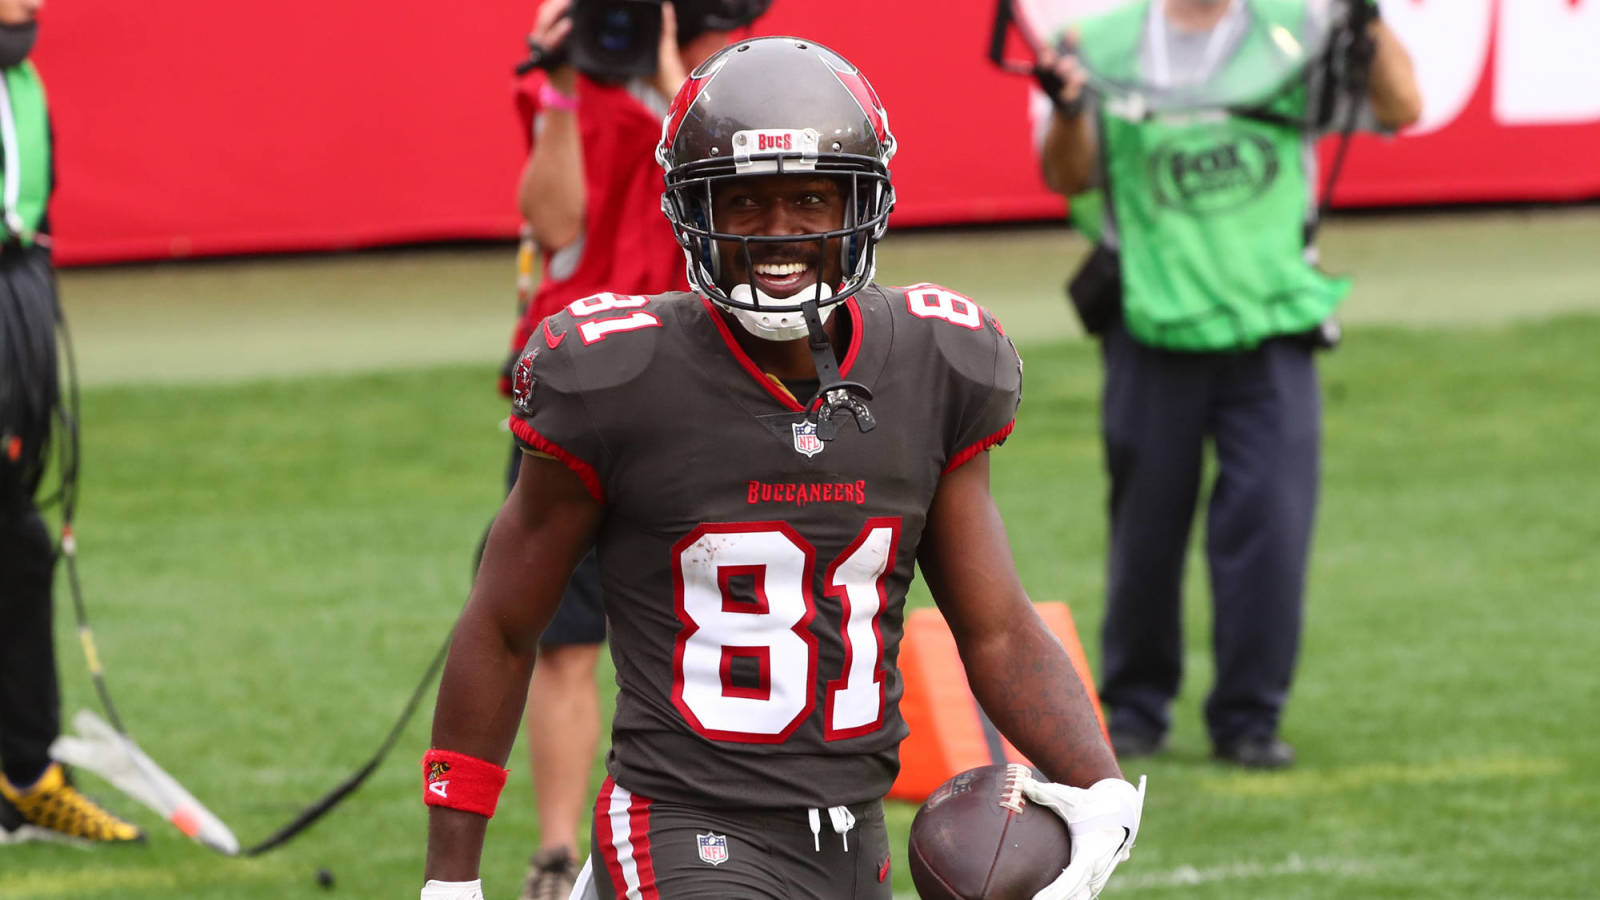 Report: Buccaneers WR Antonio Brown expected back for Super Bowl